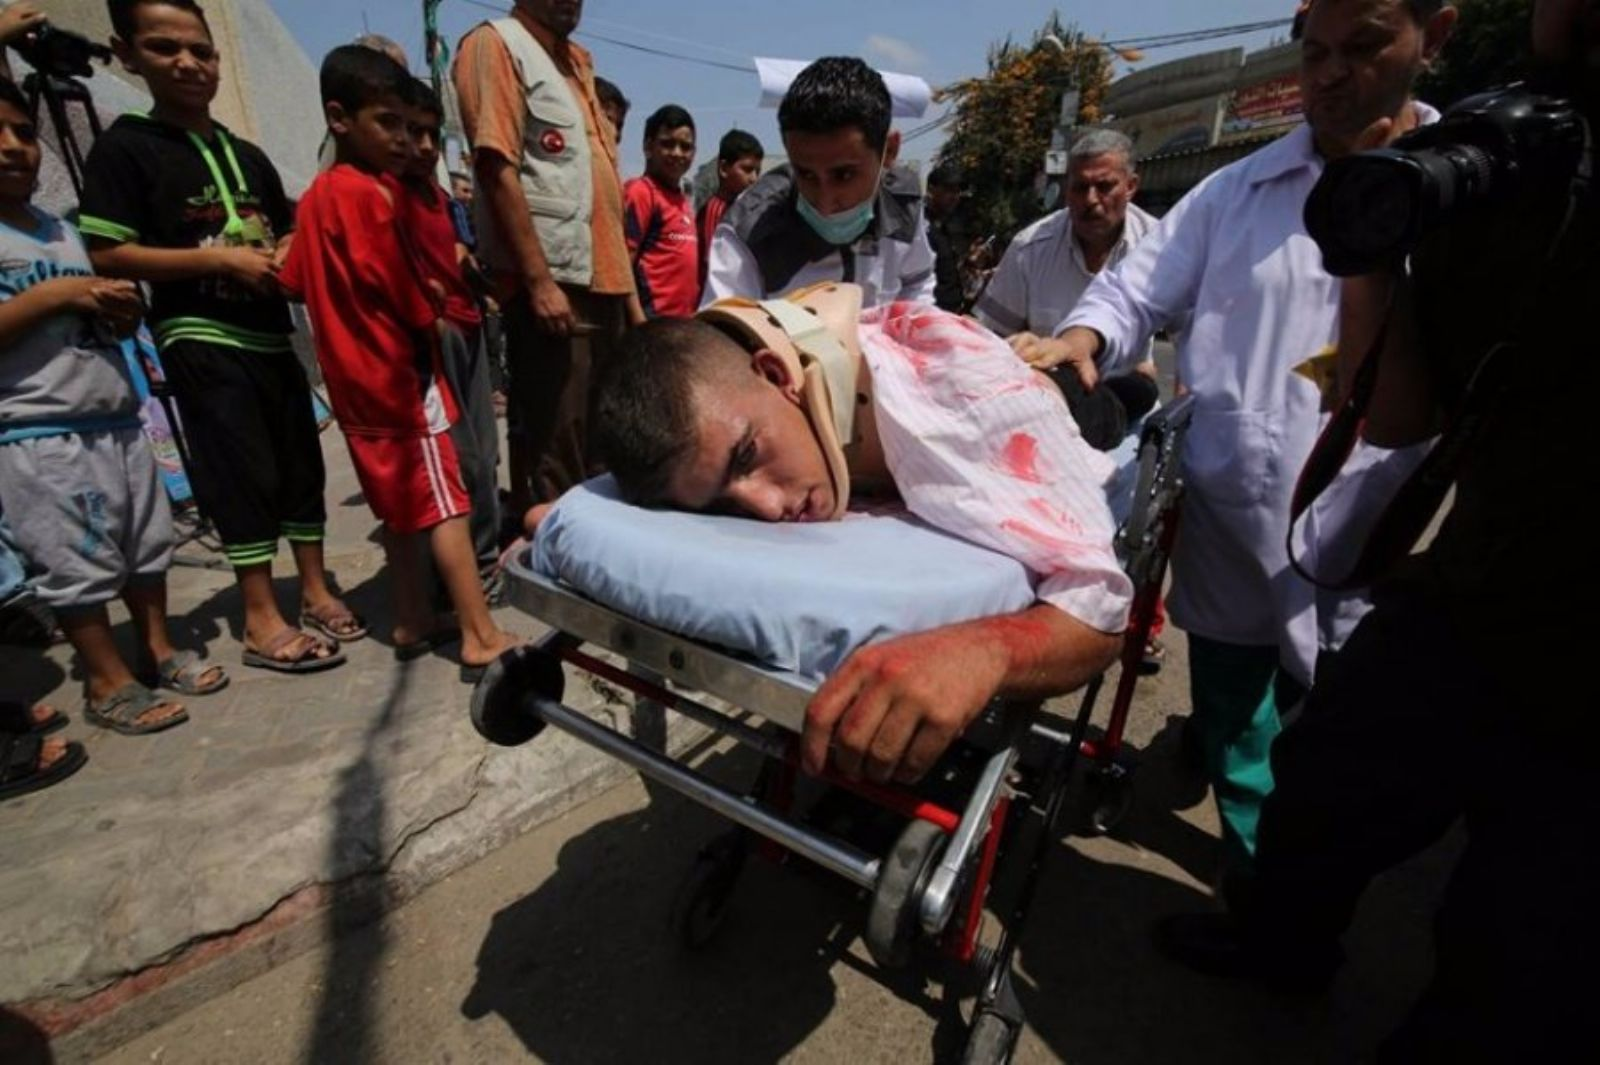 164 Palestinians wounded by Israeli forces in West Bank, Gaza Strip